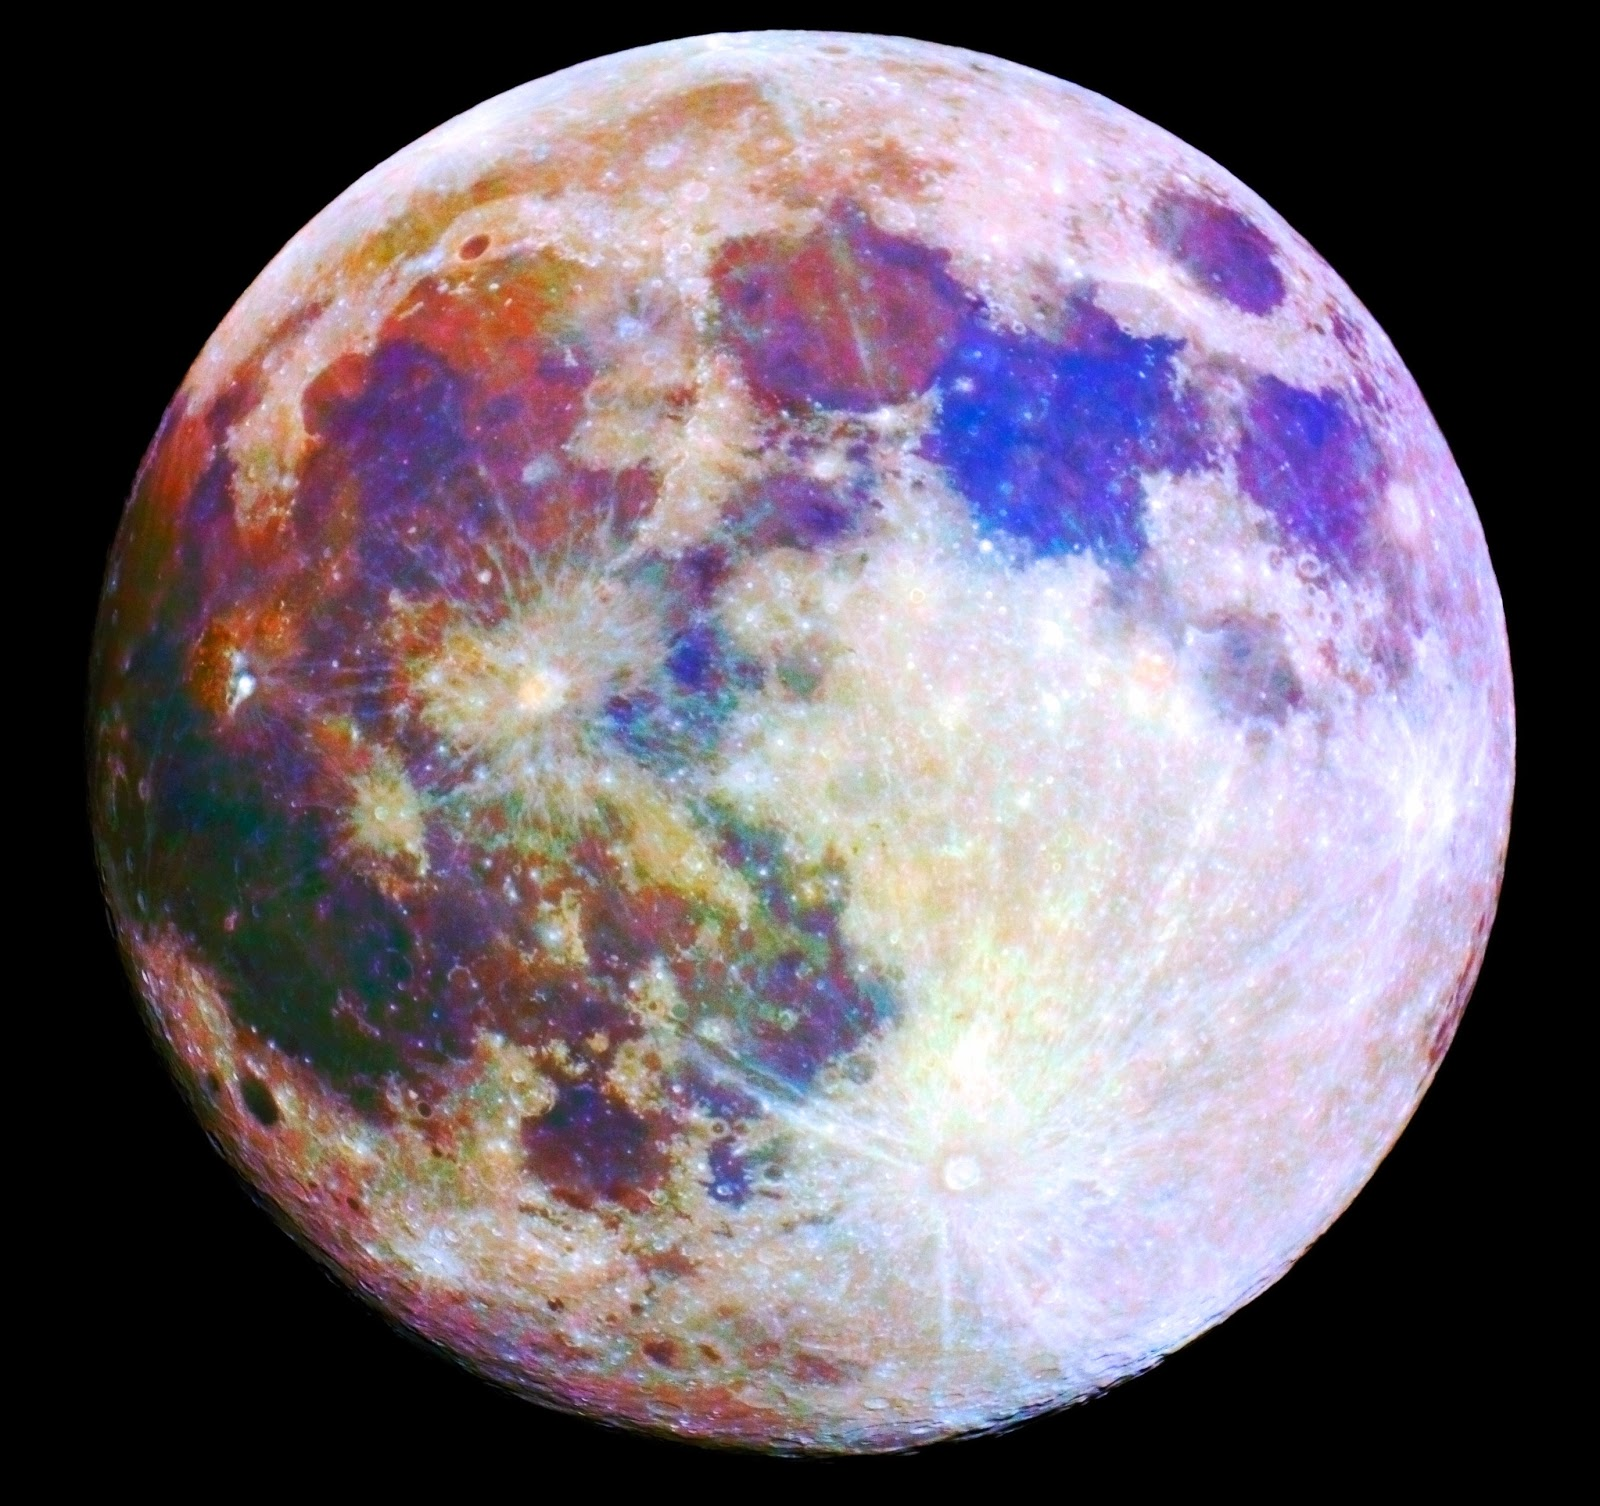 the mars moons color - photo #28